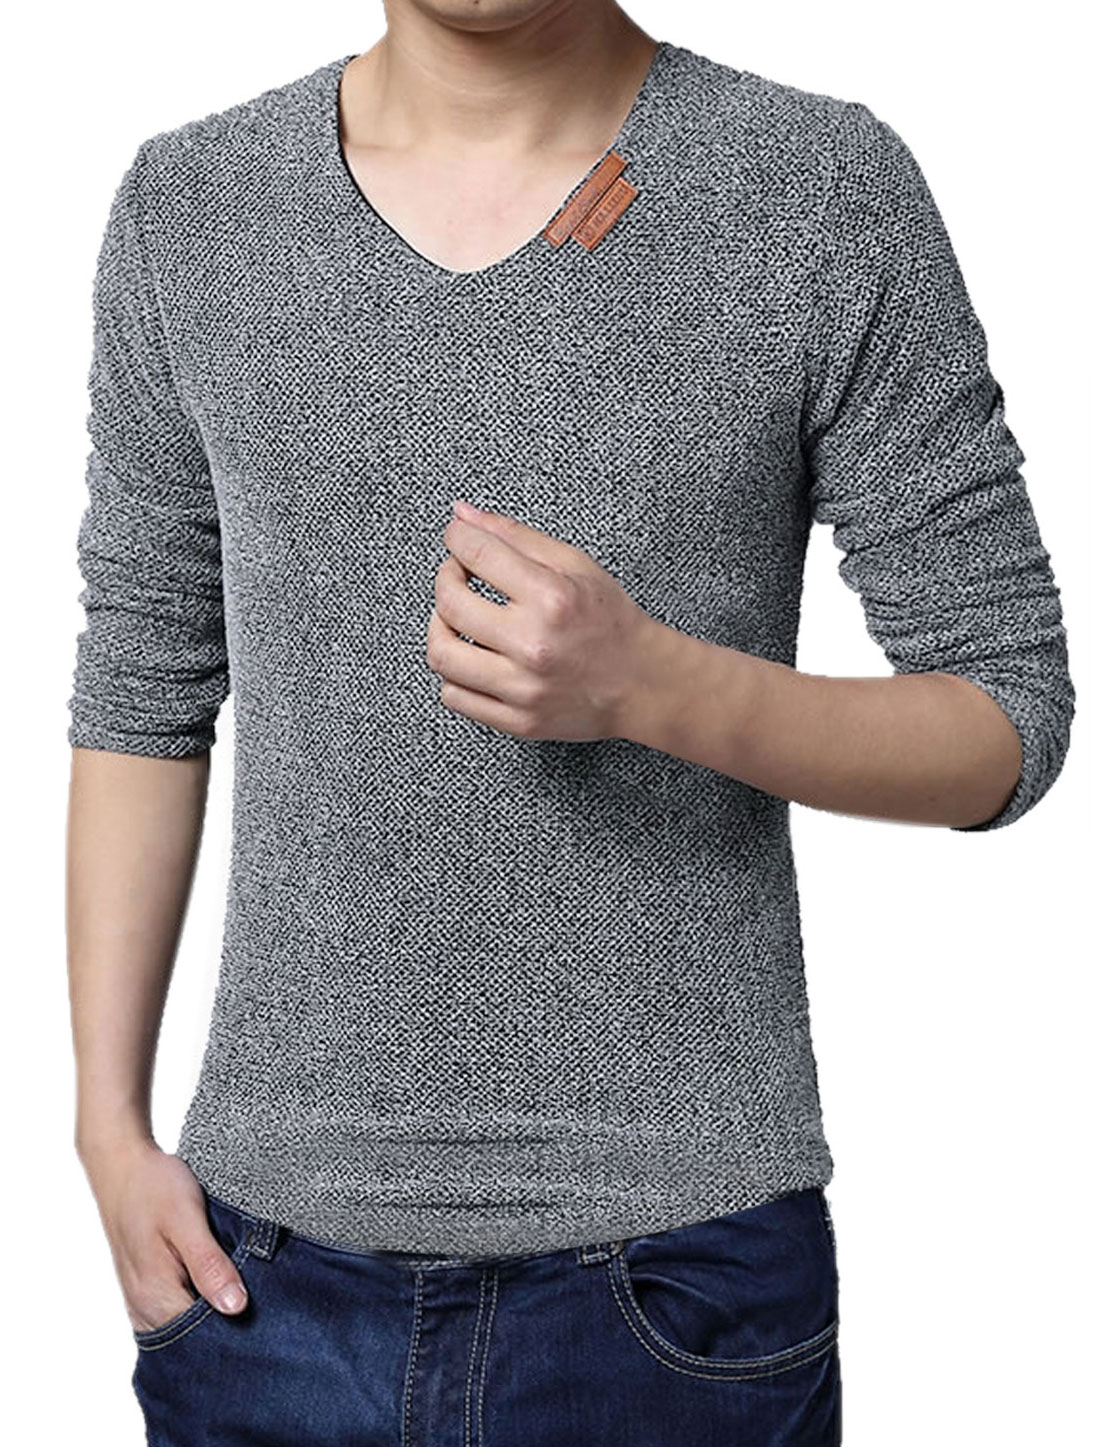 Men V Neck Long Sleeves Netted Mesh Tee Shirt Gray M